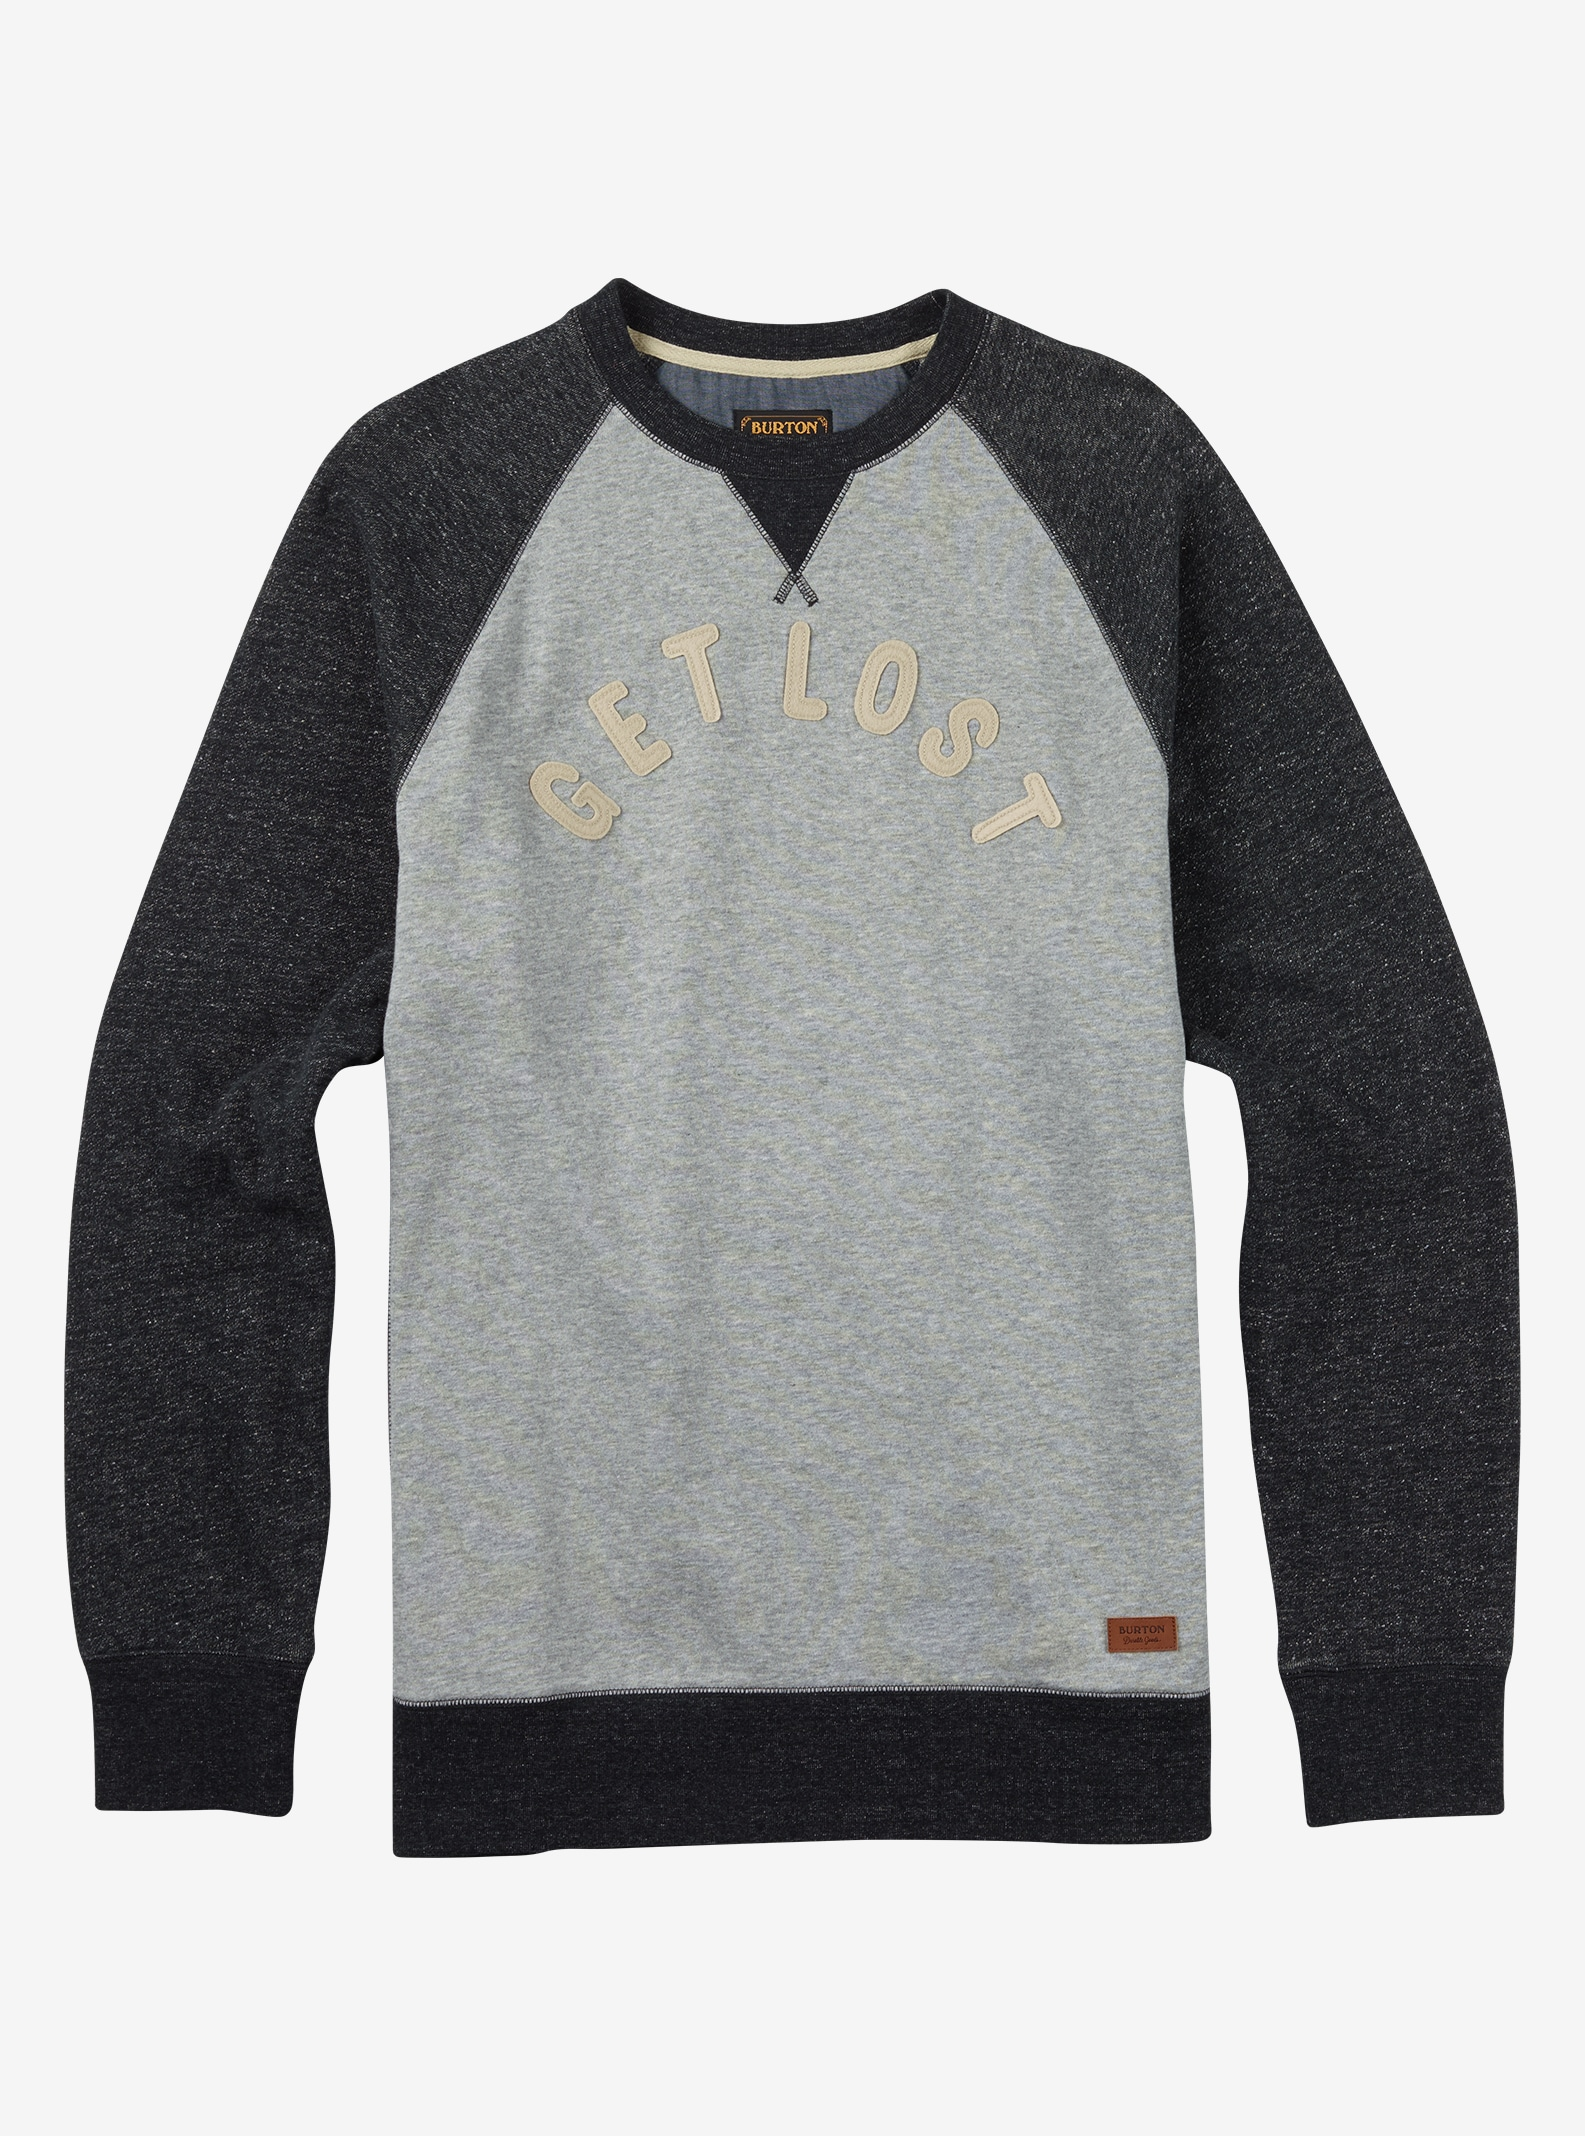 Burton Lost and Found Crew shown in Gray Heather